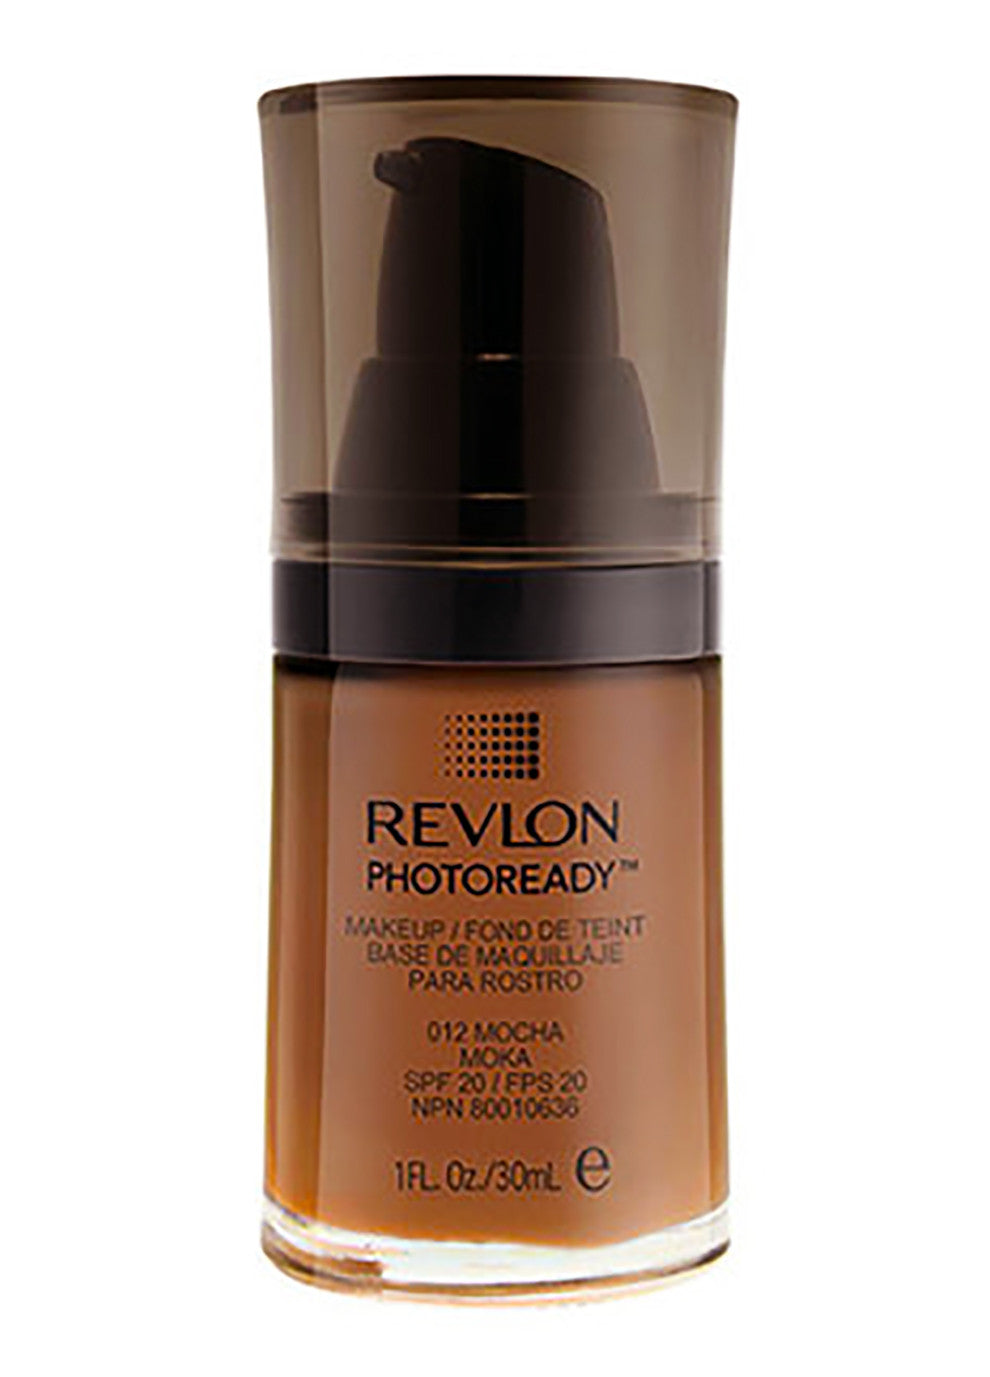 REVLON PHOTOREADY Makeup #012 MOCHA Liquid Foundation SPF 20